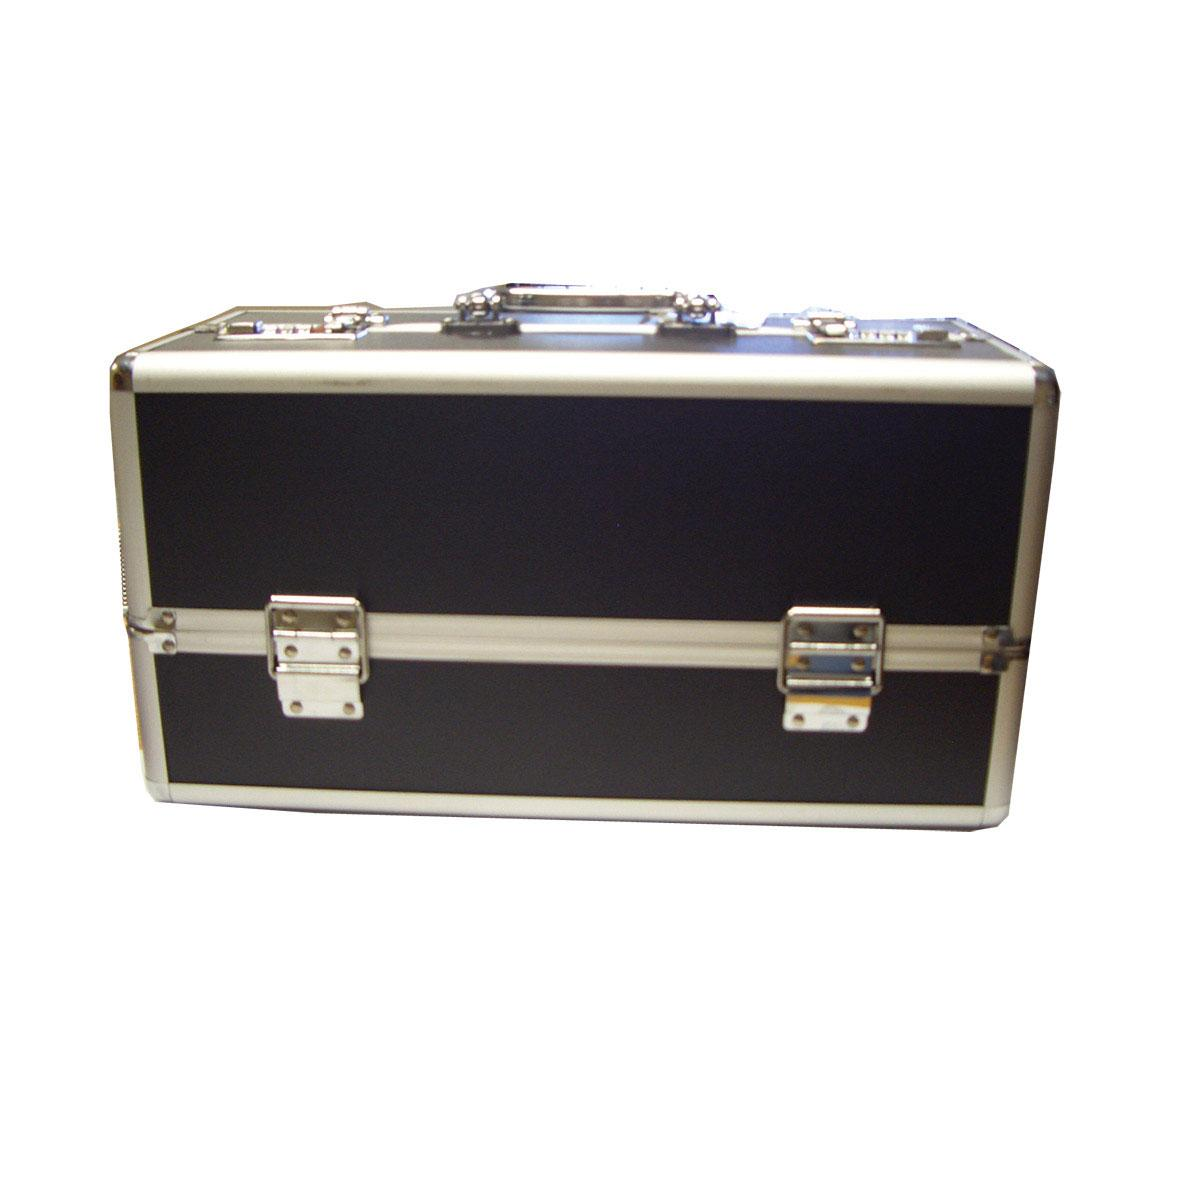 "Lockable Toy Box Large (15""x8""x7"") - Black"